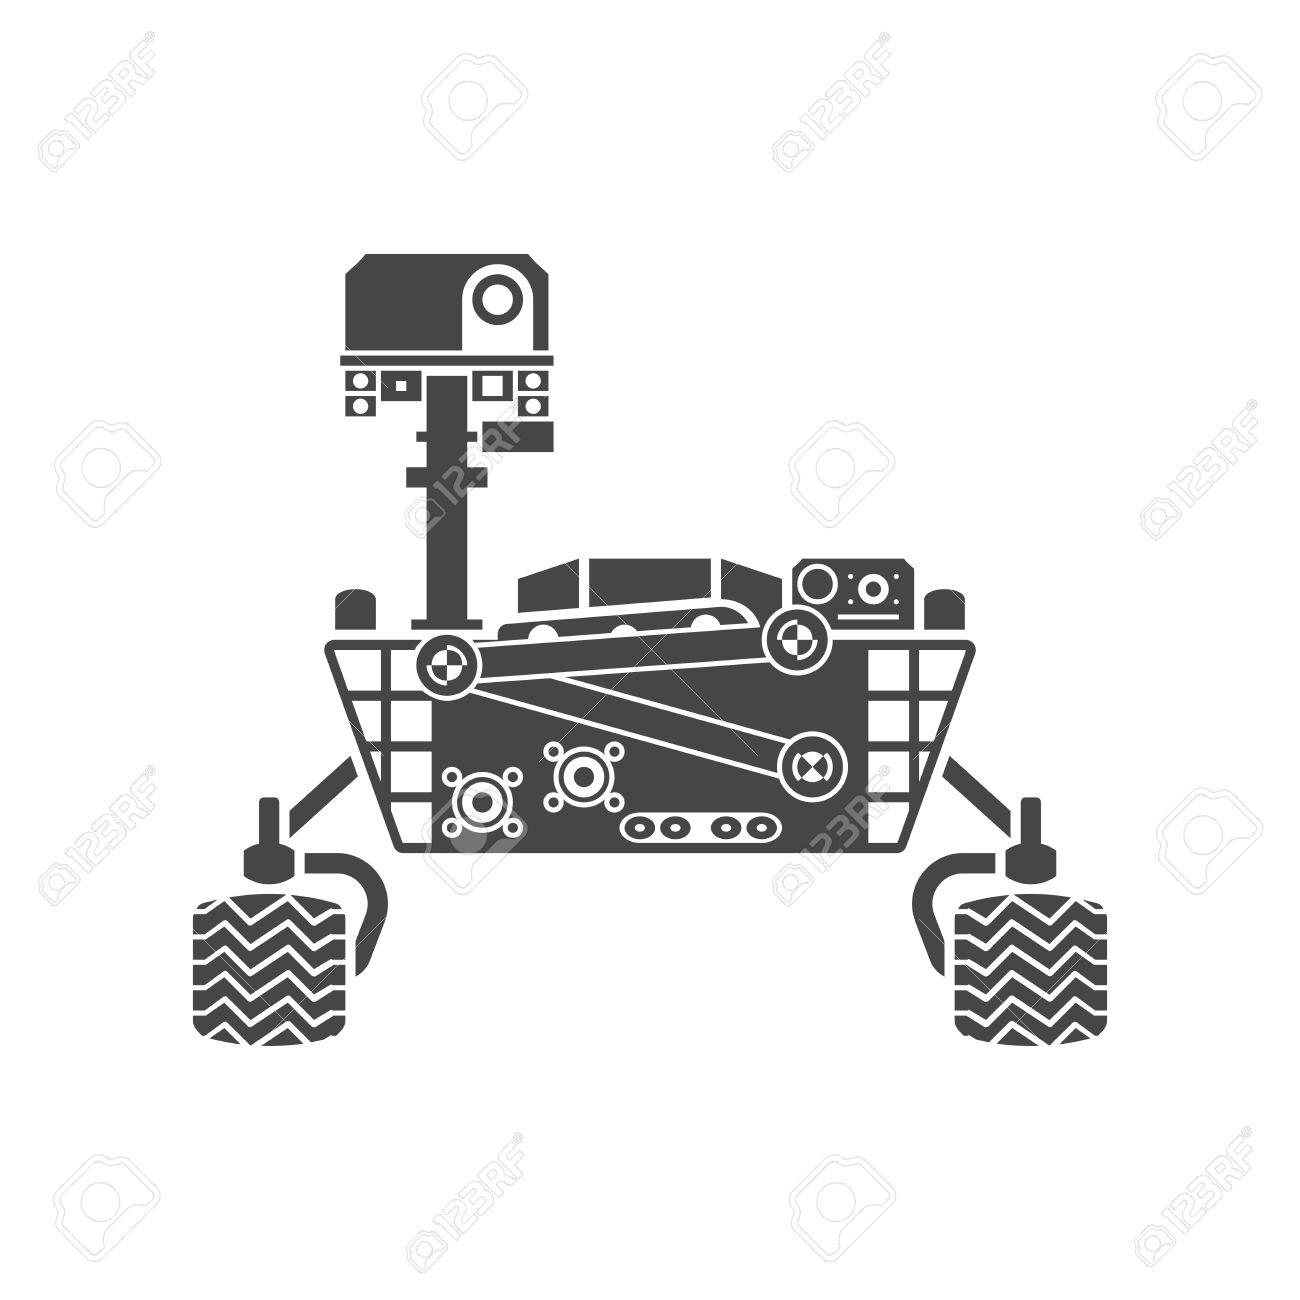 Mars Rover, Silhouette, Vector Illustration, Isolated On White.